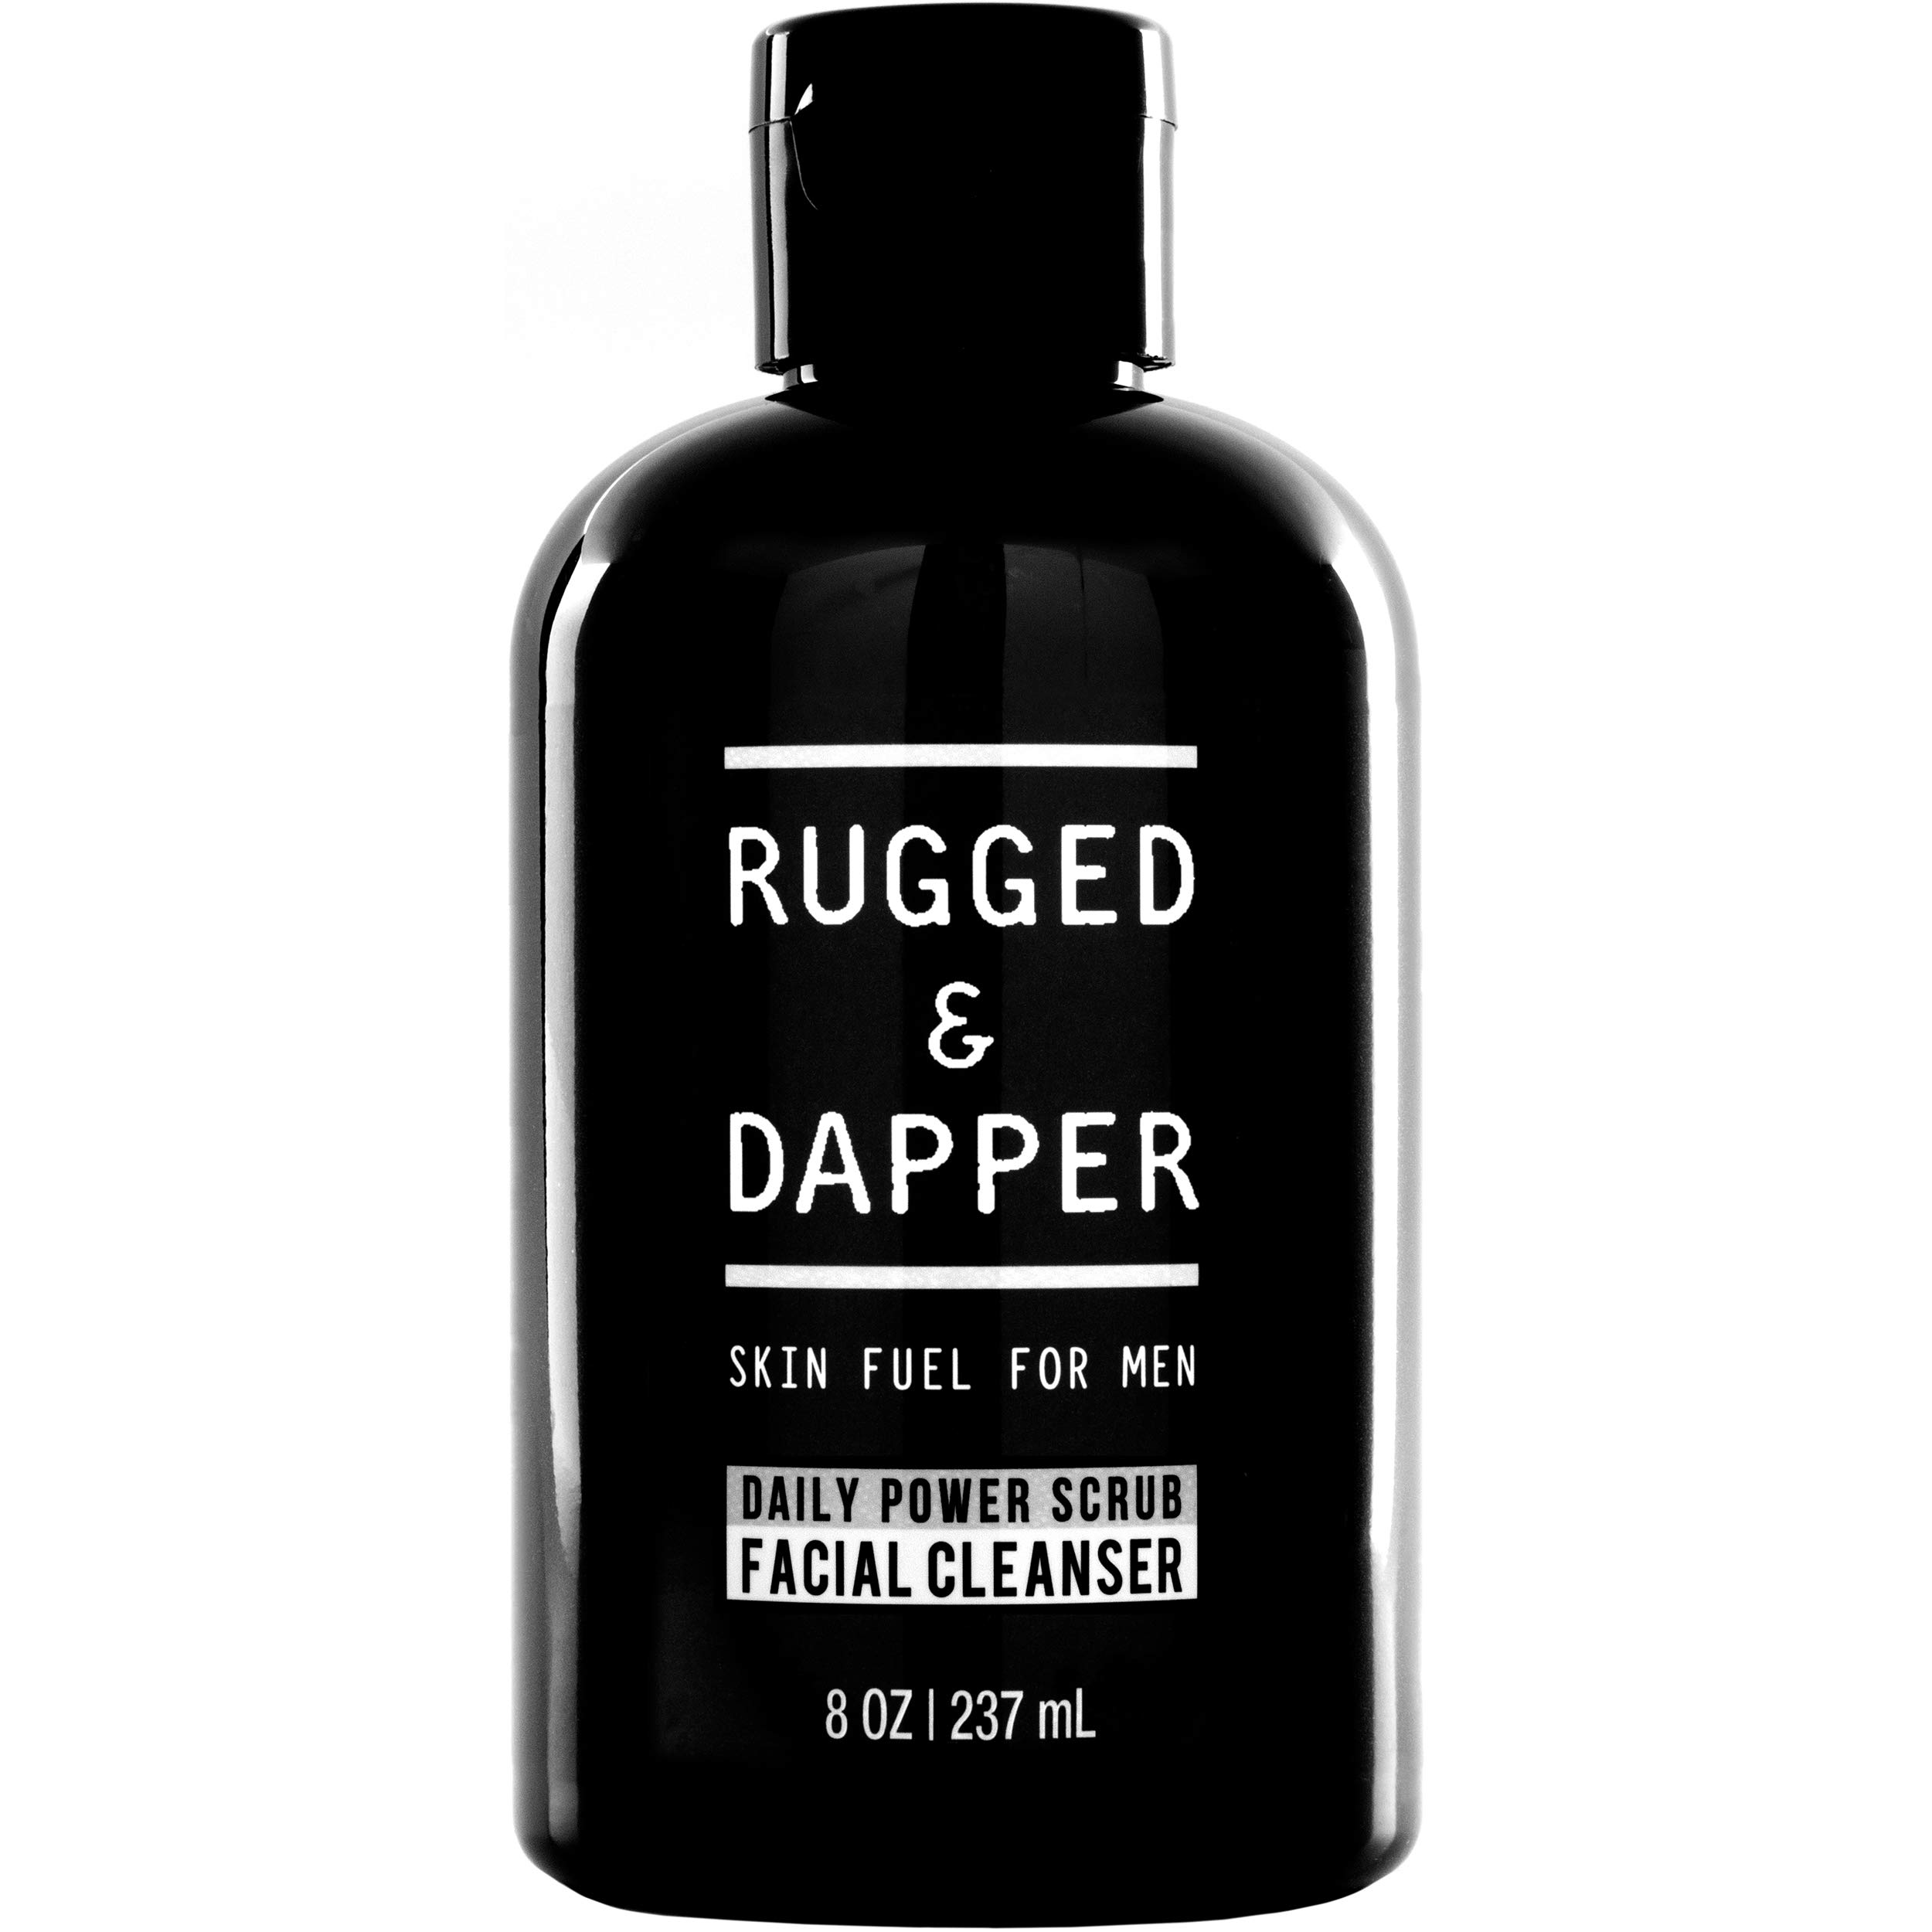 RUGGED & DAPPER Daily Face Wash and Scrub Cleanser for Men, 8 ounces by RUGGED & DAPPER